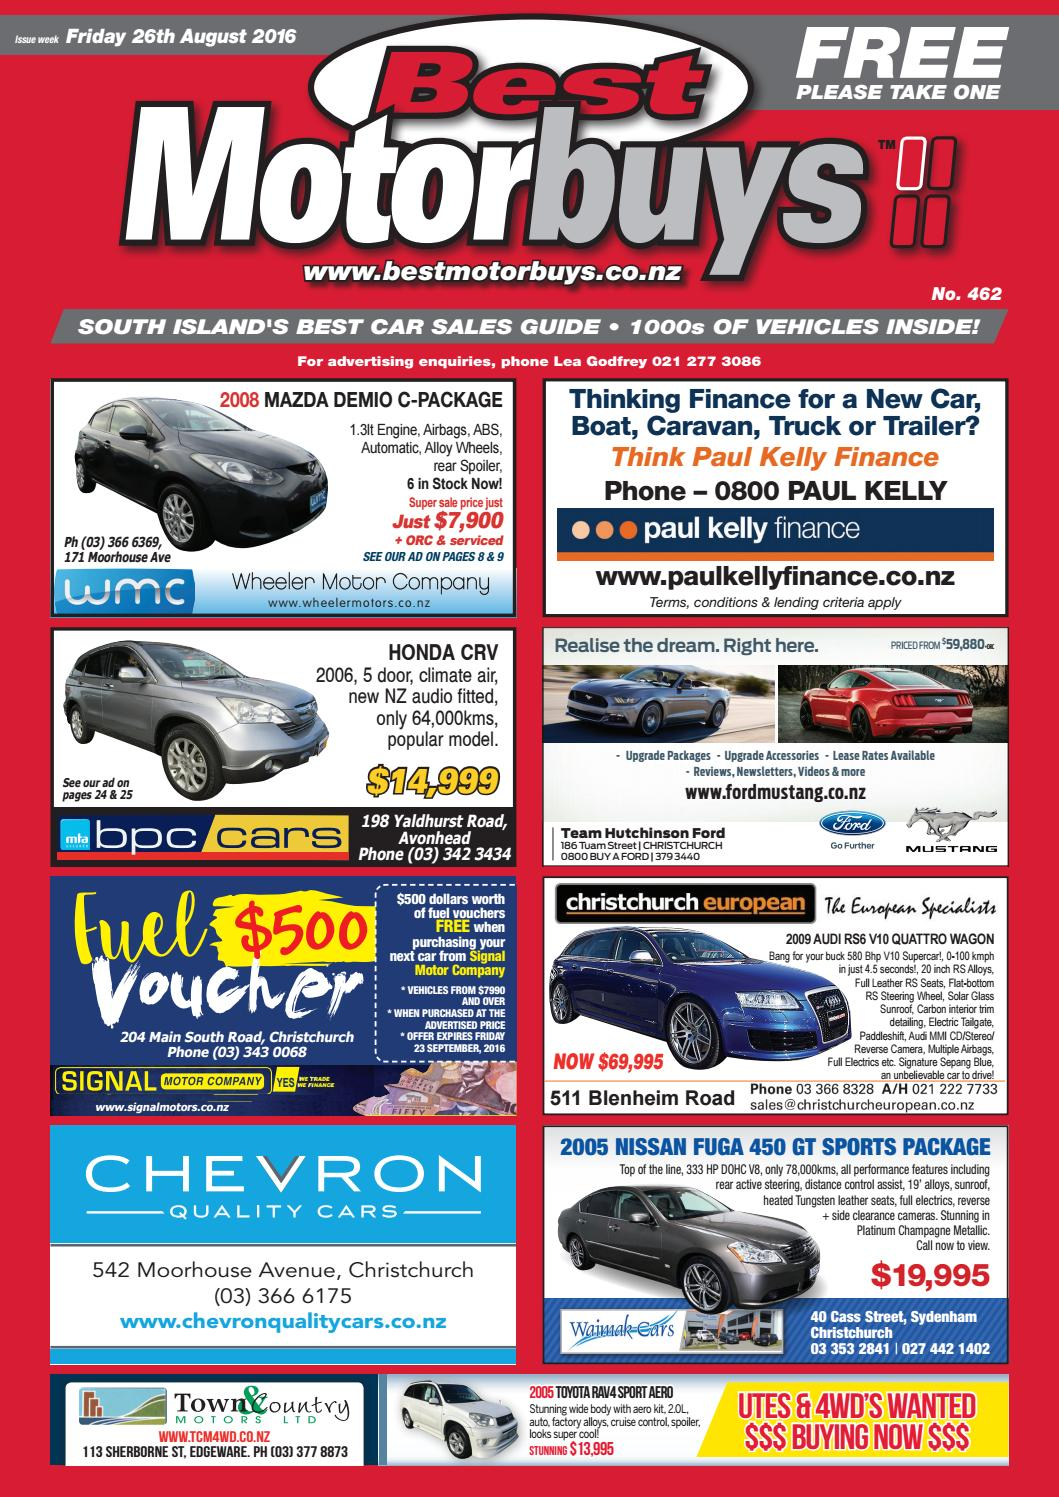 Best Motorbuys 26 08 16 By Local Newspapers Issuu 2002 Ford Focus Se Wagon 20 Liter Dohc 16valve Zetec 4 Cylinder